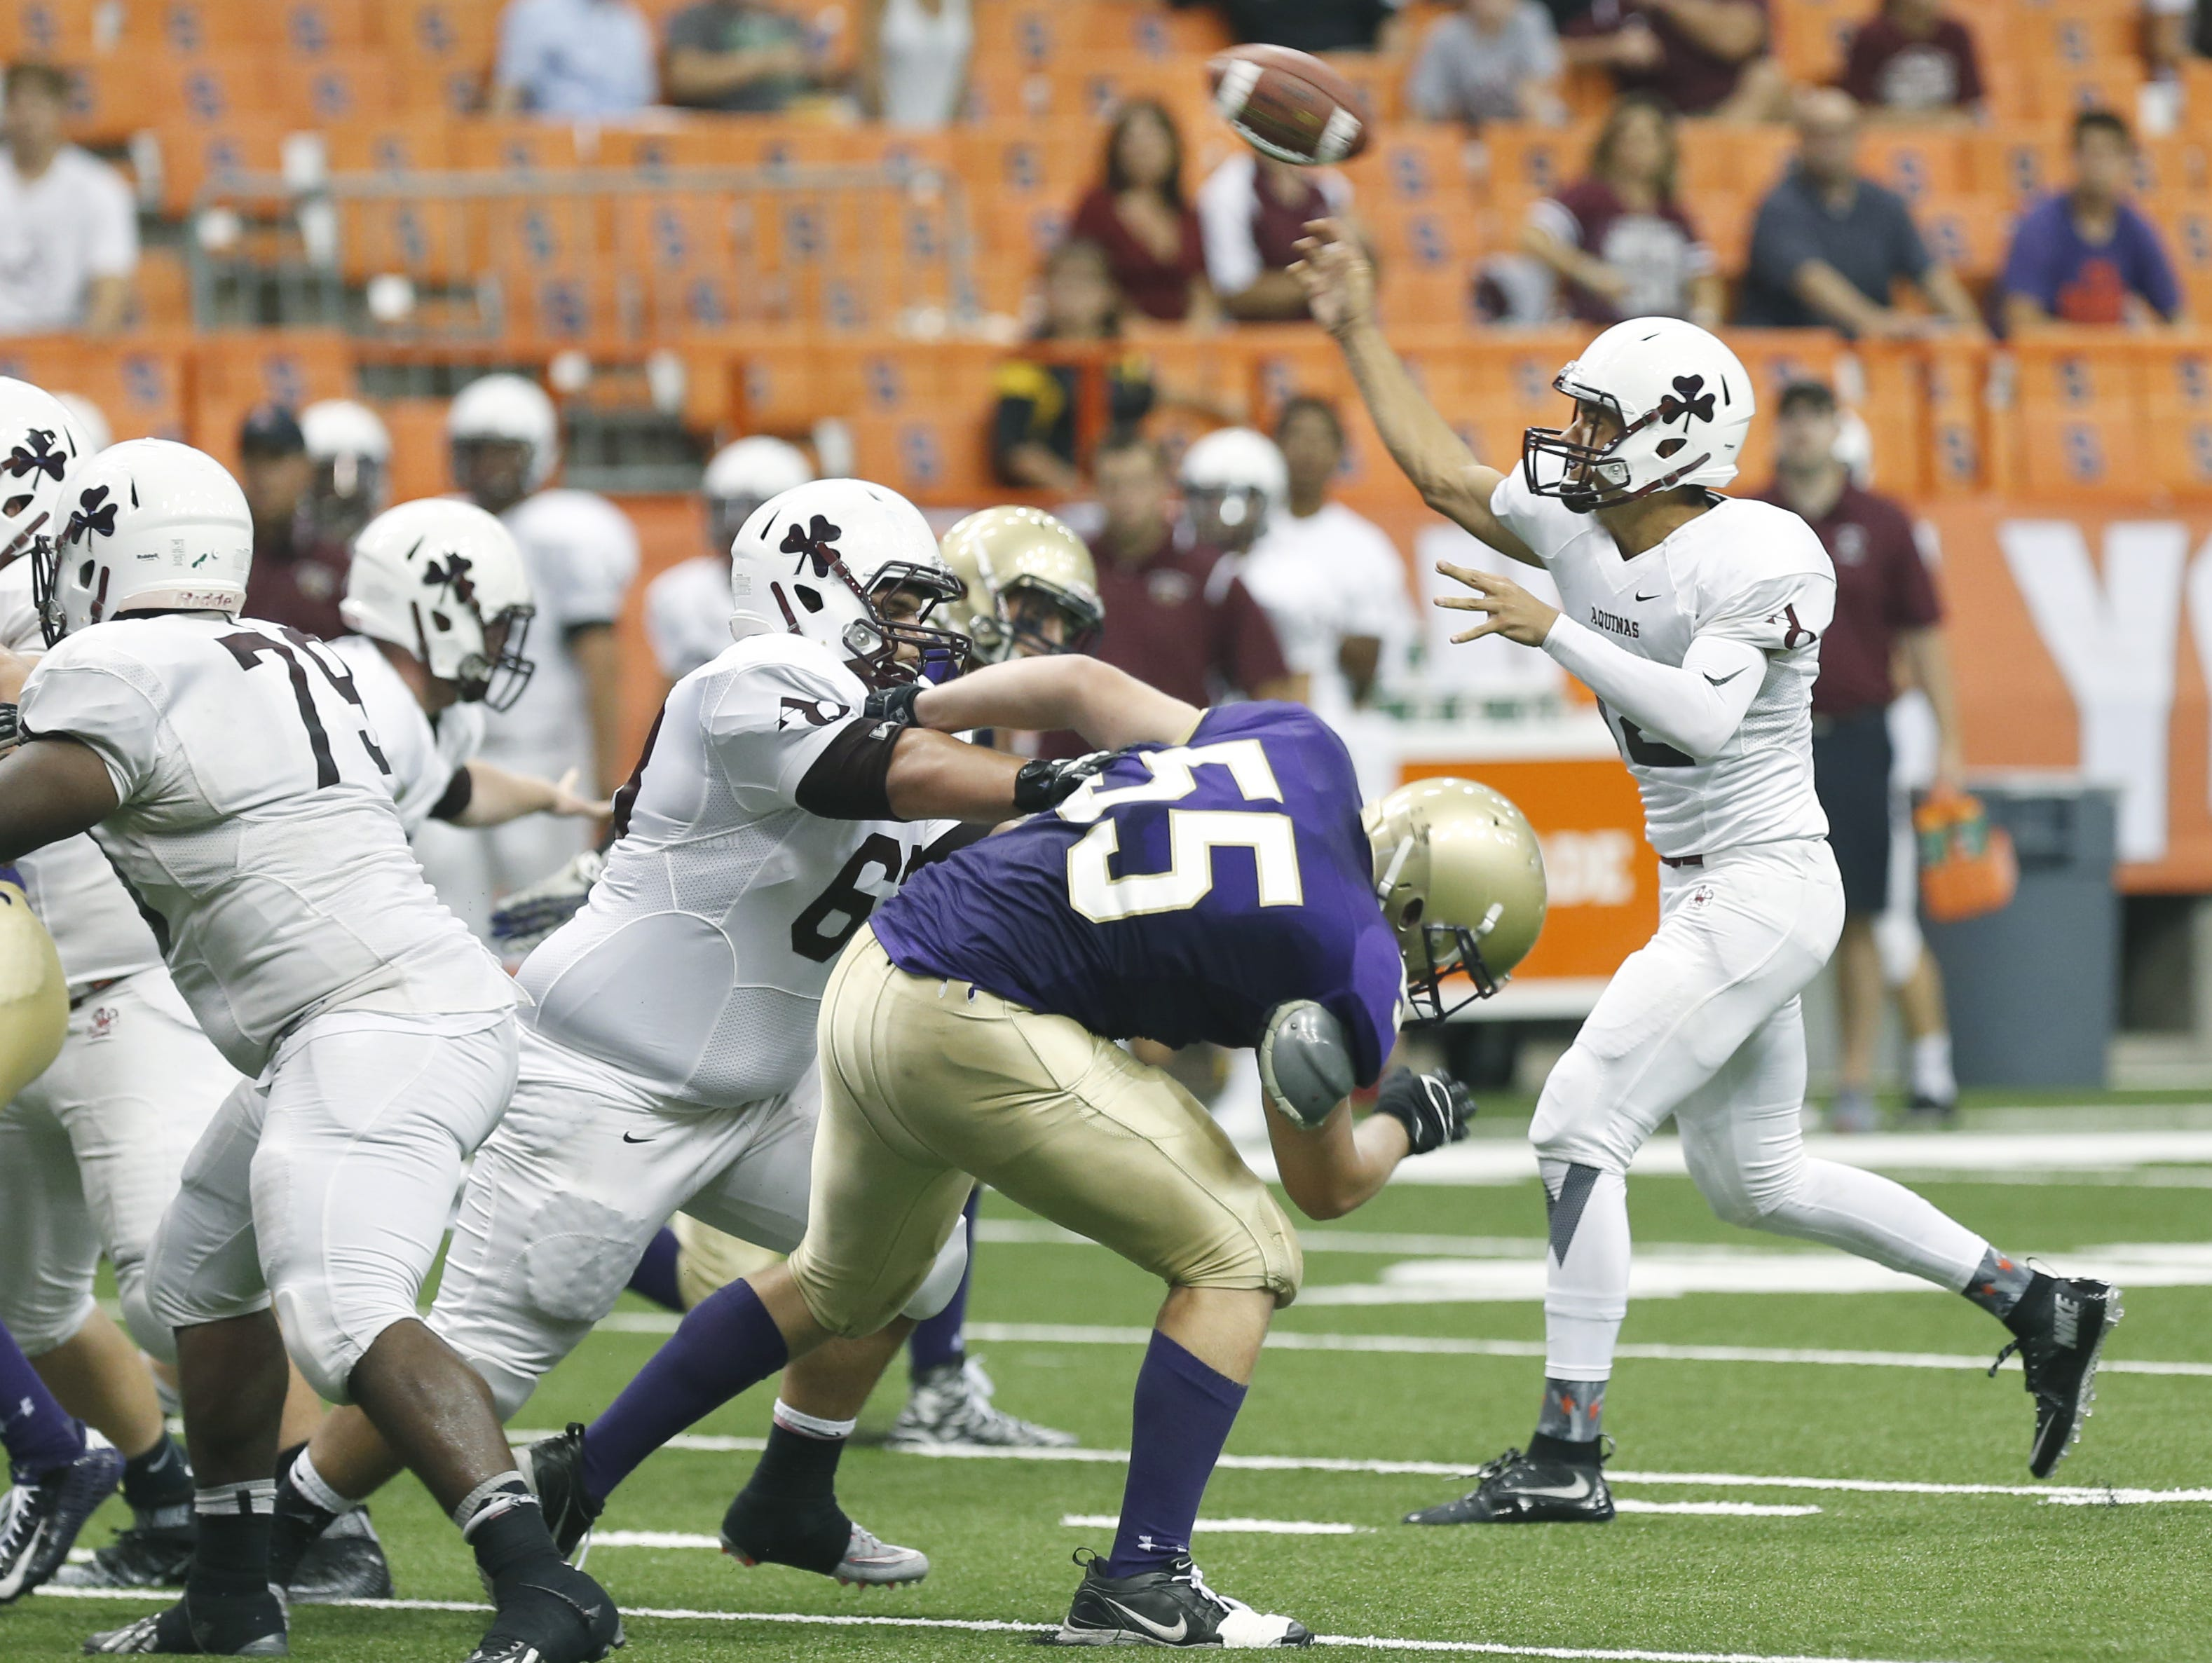 Aquinas senior Jake Zembiec, shown here throwing a pass In Week 1 inside the Carrier Dome, threw four touchdown passes against Buffalo Saint Francis Sept. 26.